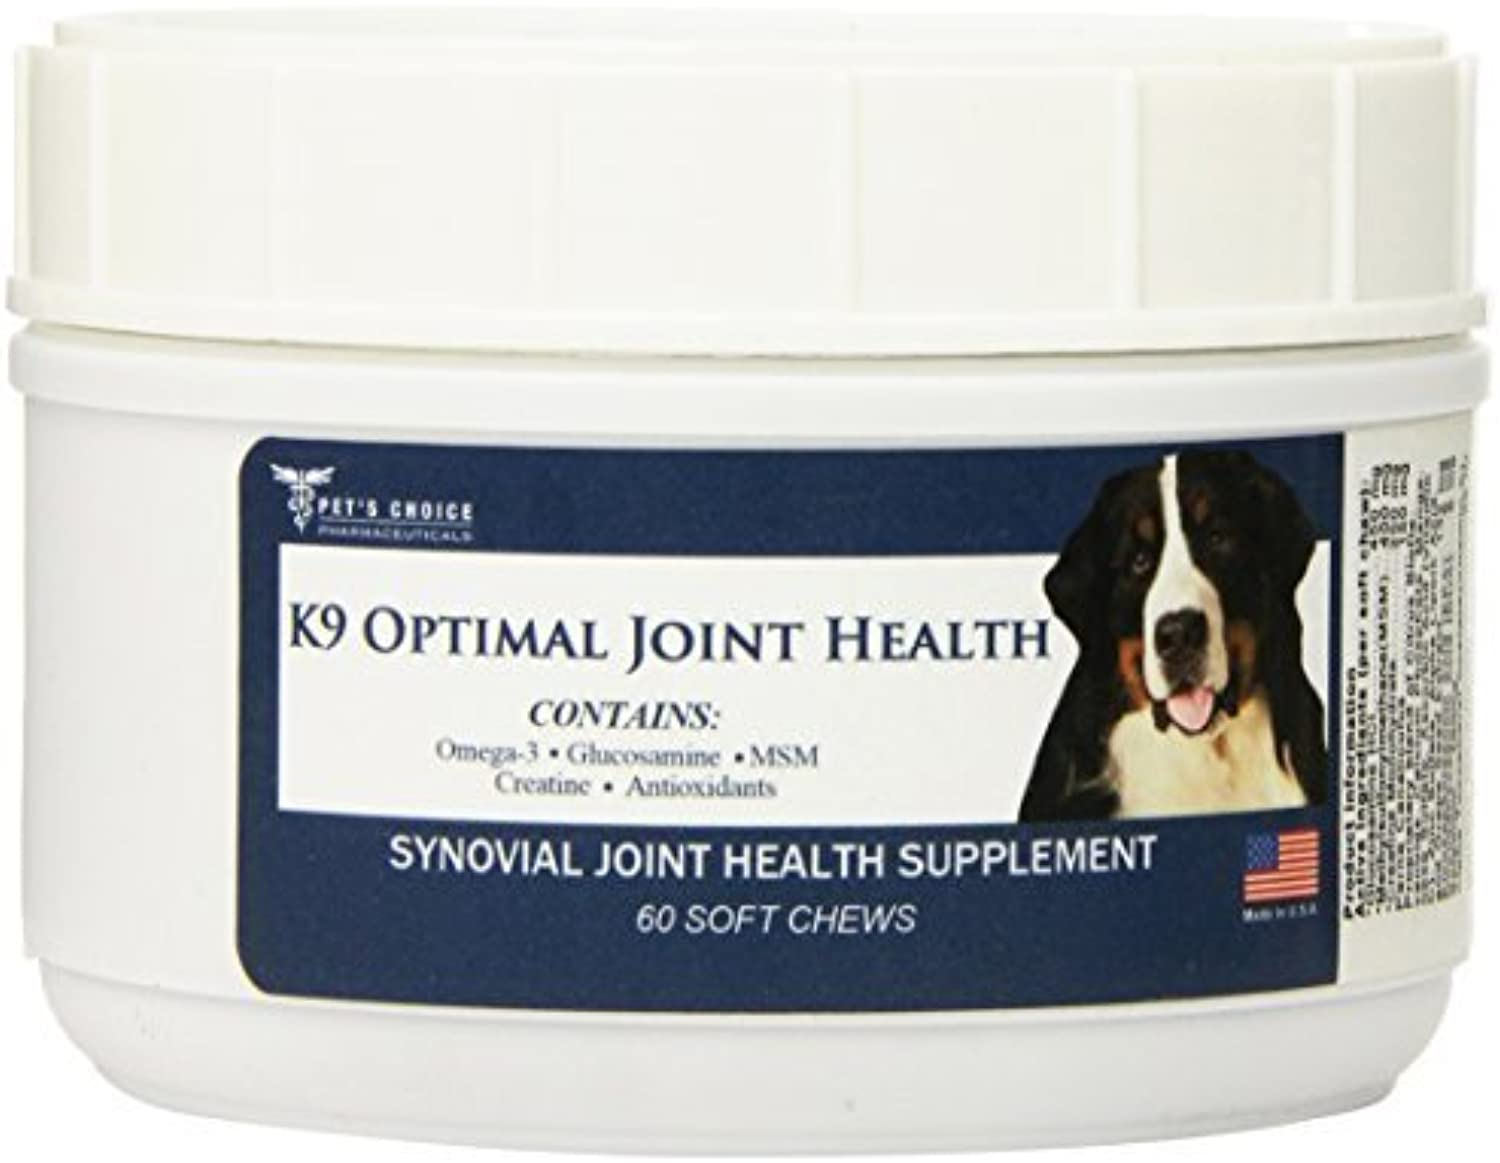 Pet's Choice 60 Count K9 Optimal Joint and Health Supplement by Lambriar Vet